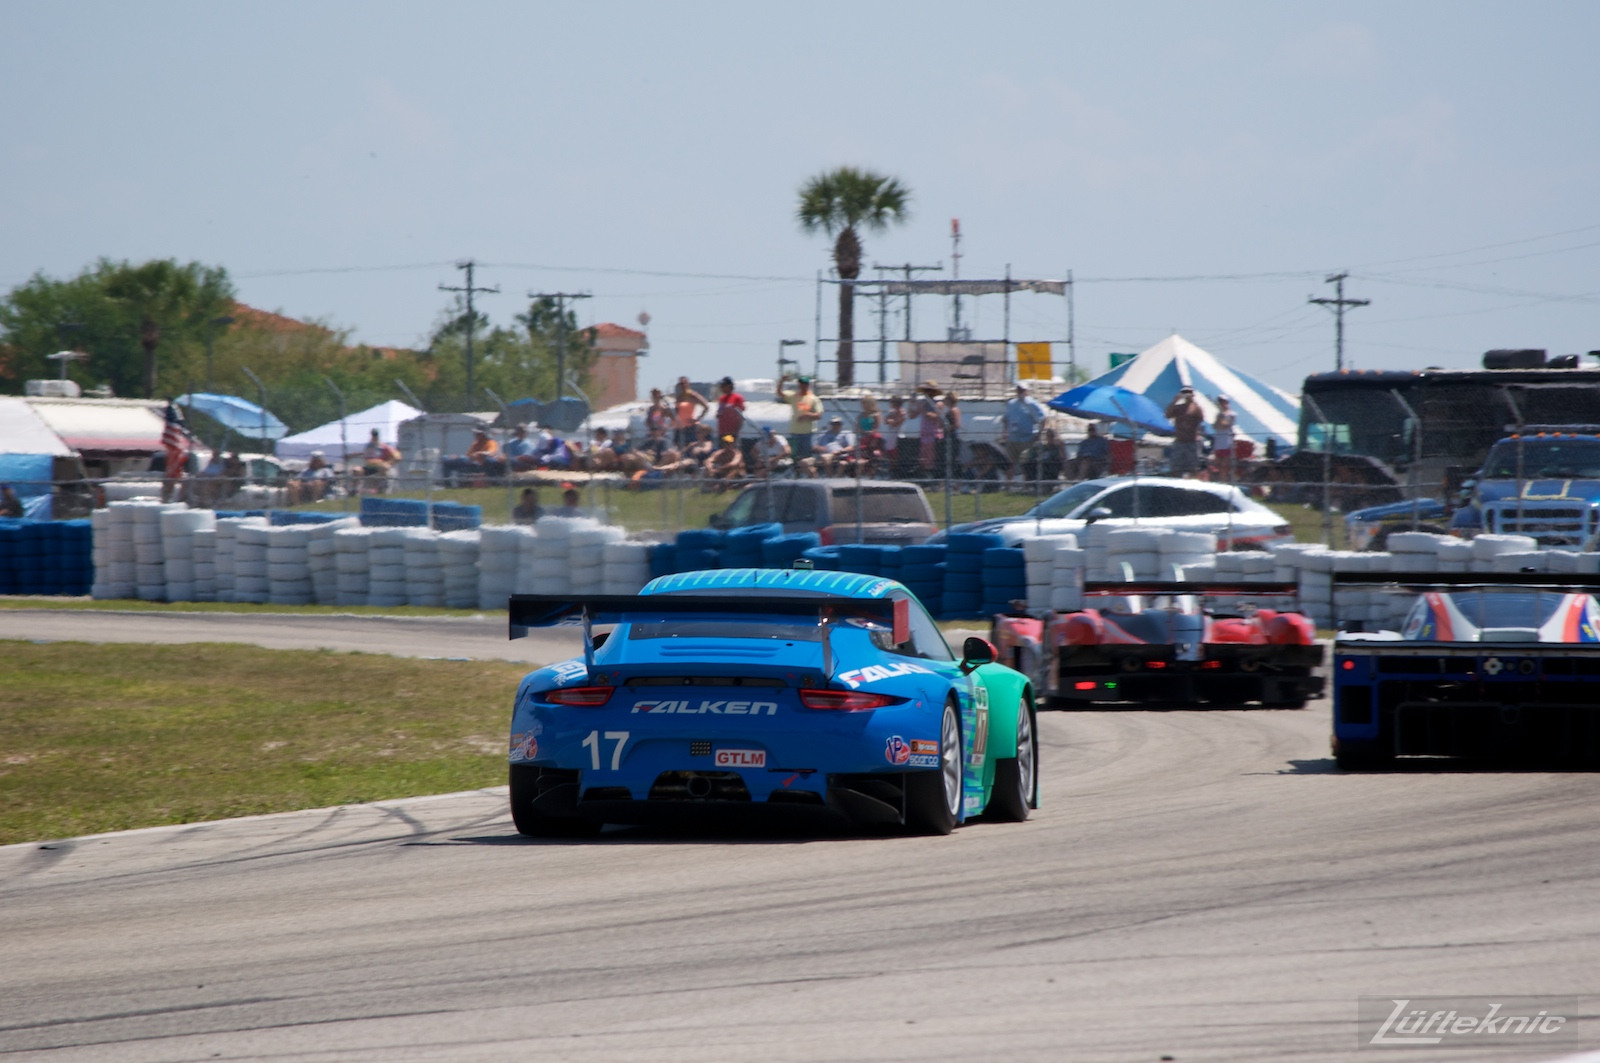 The iconic teal and blue Falken Tire Porsche 911 RSR at Sebring.